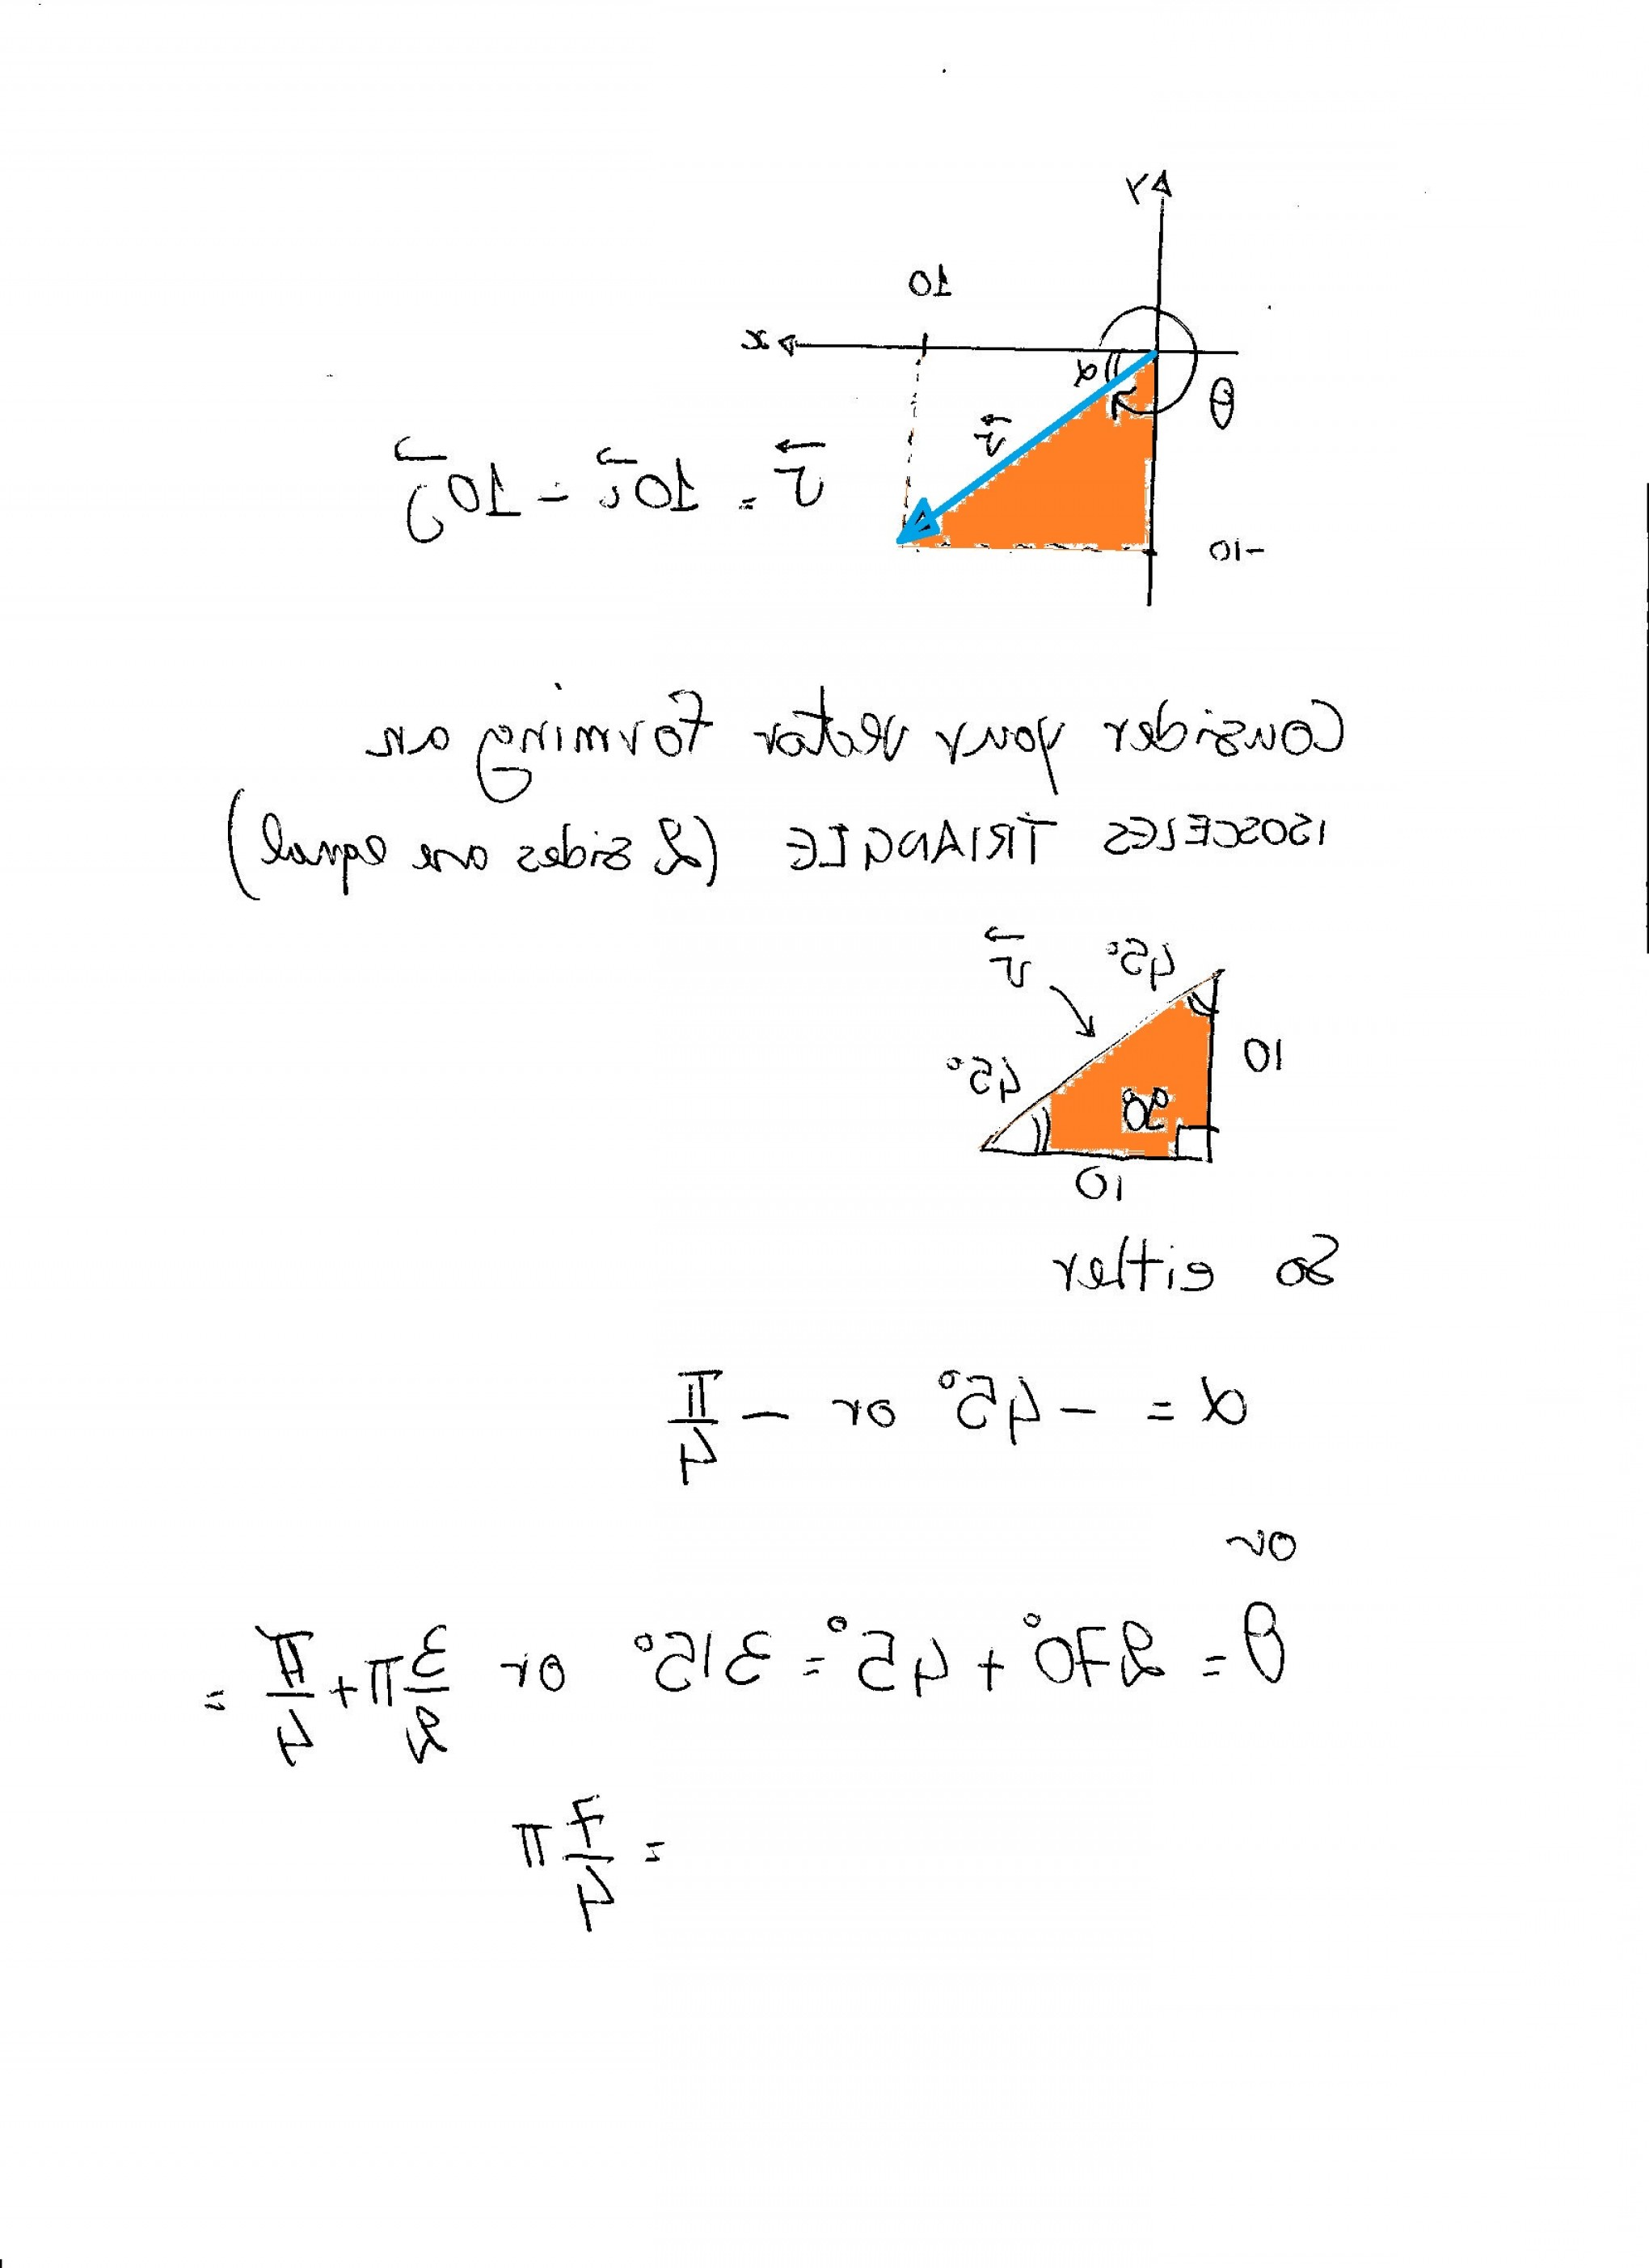 Pre-Calc Vector Representation: Find The Direction Angle Of The Vector V I J